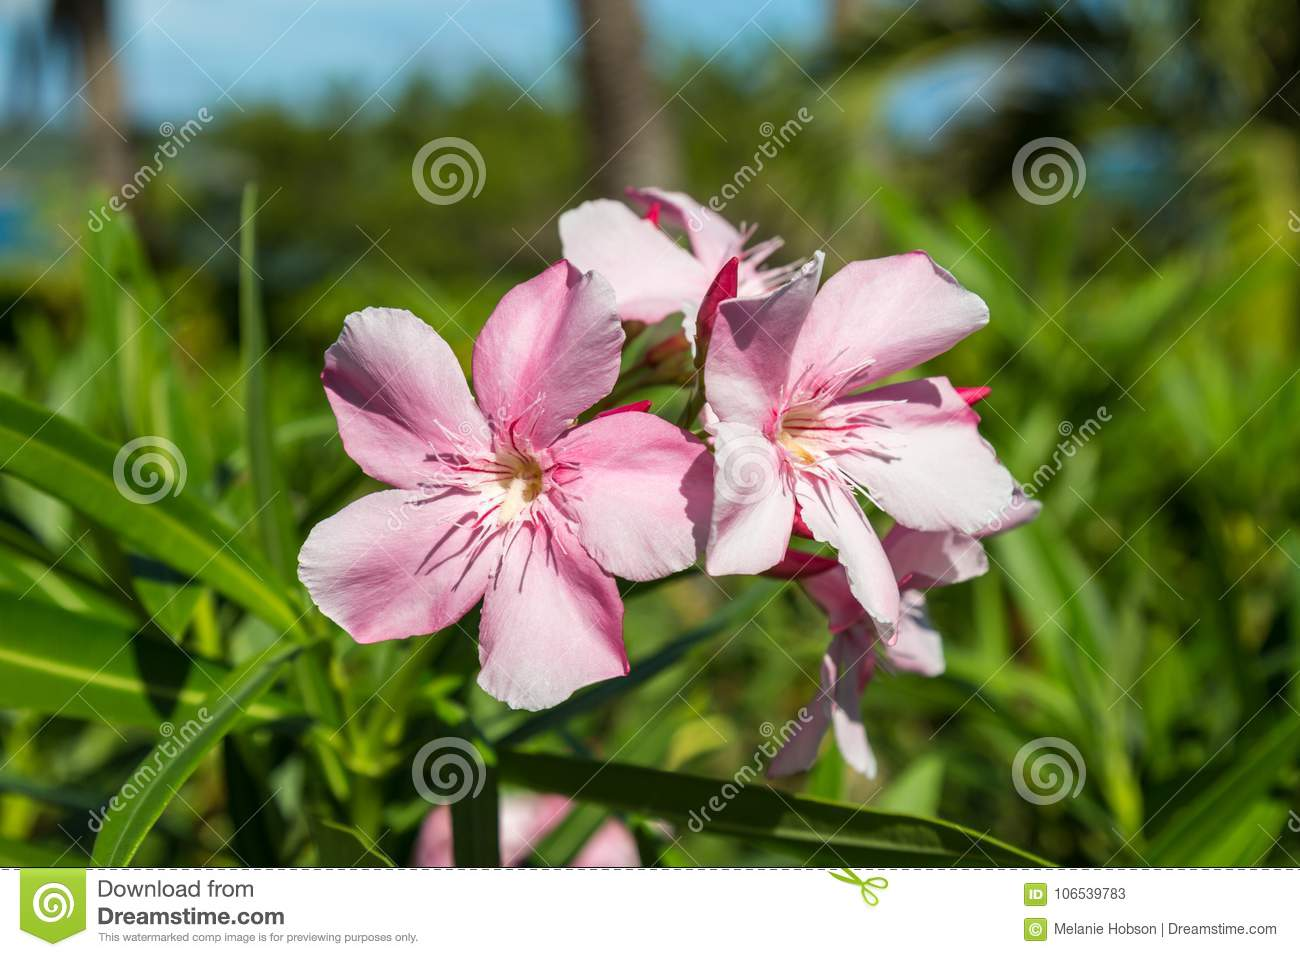 Delicate Pink Flowers Stock Image Image Of Green Shallow 106539783